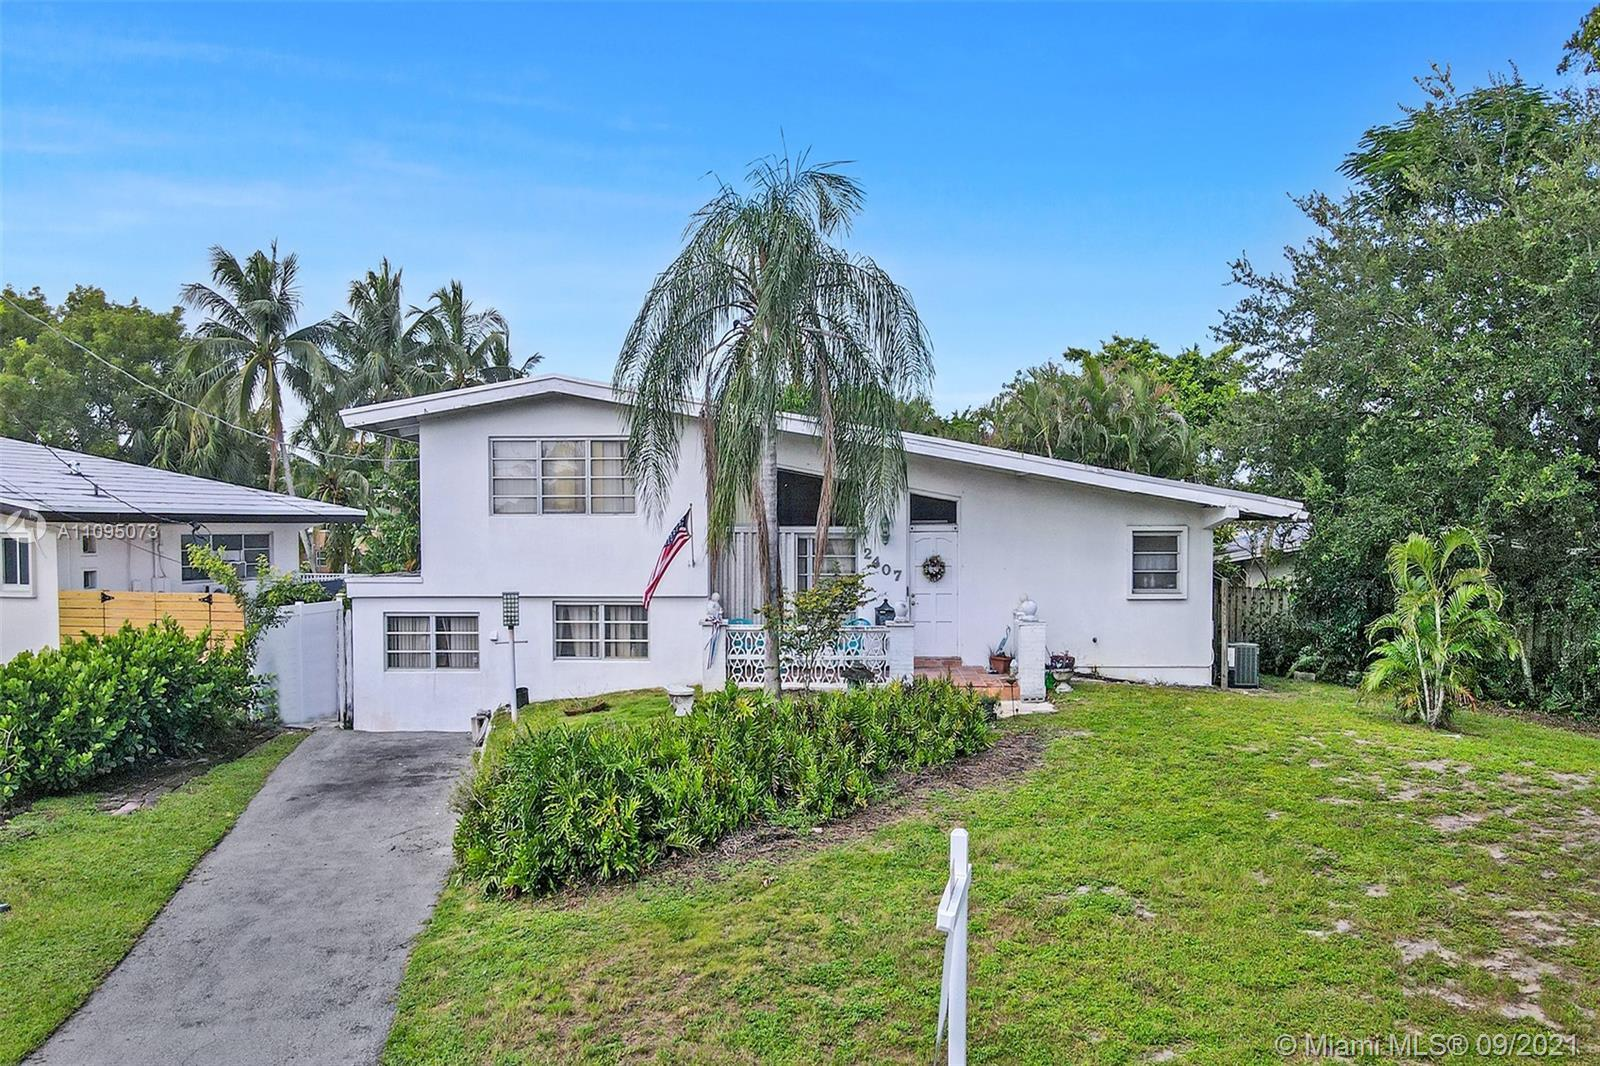 ATTENTION INVESTORS - ESTATE SALE! Large pie lot on canal with ocean access and no fixed bridges. Th